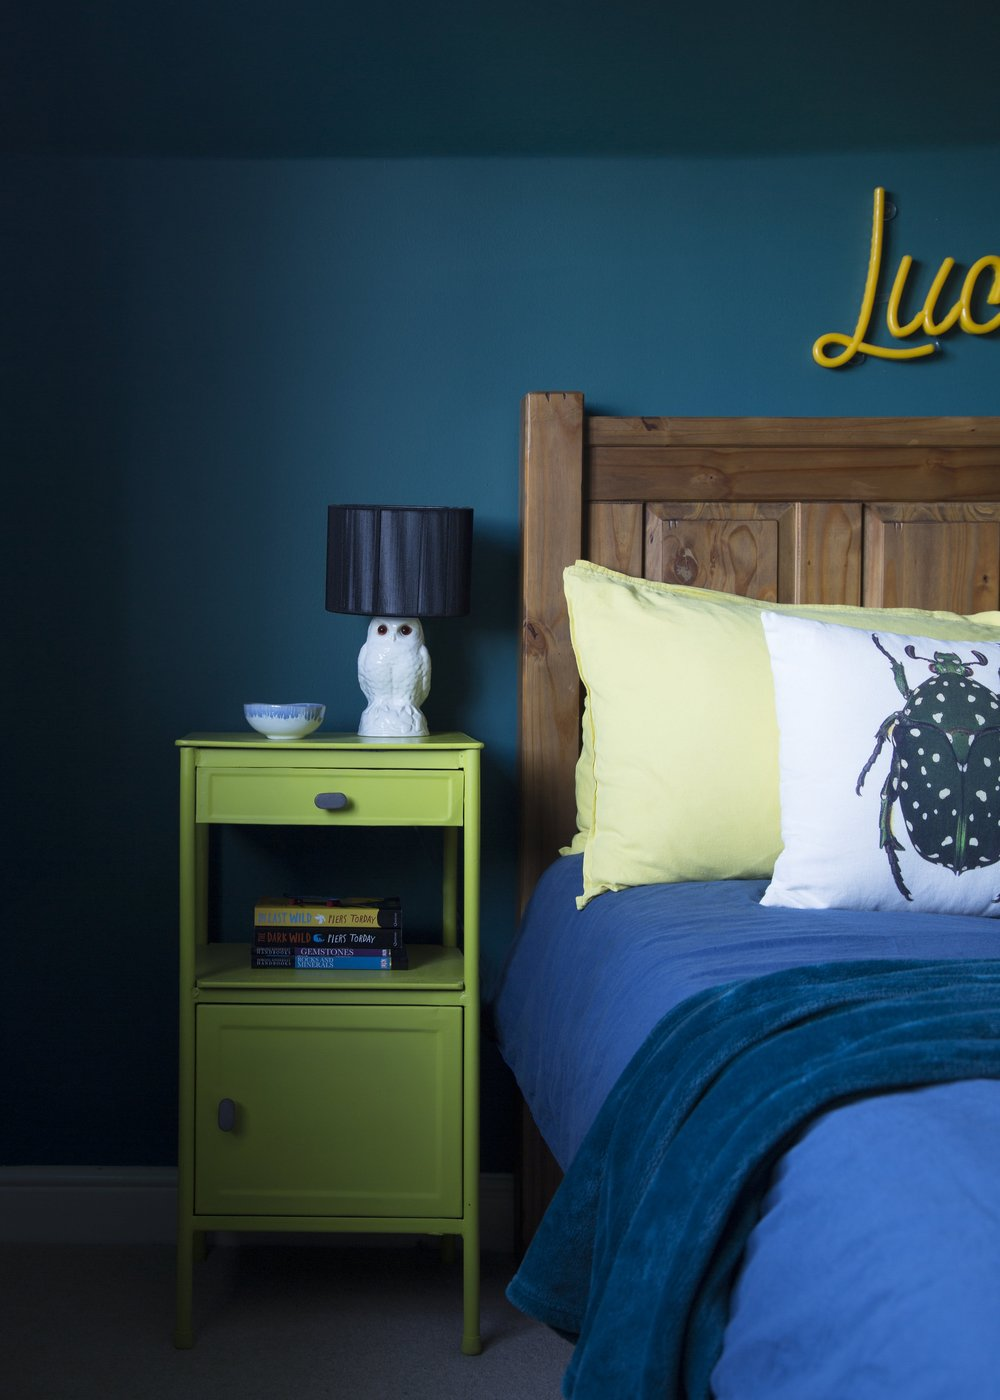 A custom-made neon name sign from Love Inc hangs above the bed in this tweenager's room in Tunbridge Wells Kent - Interior Design by Smartstyle Interiors.jpg